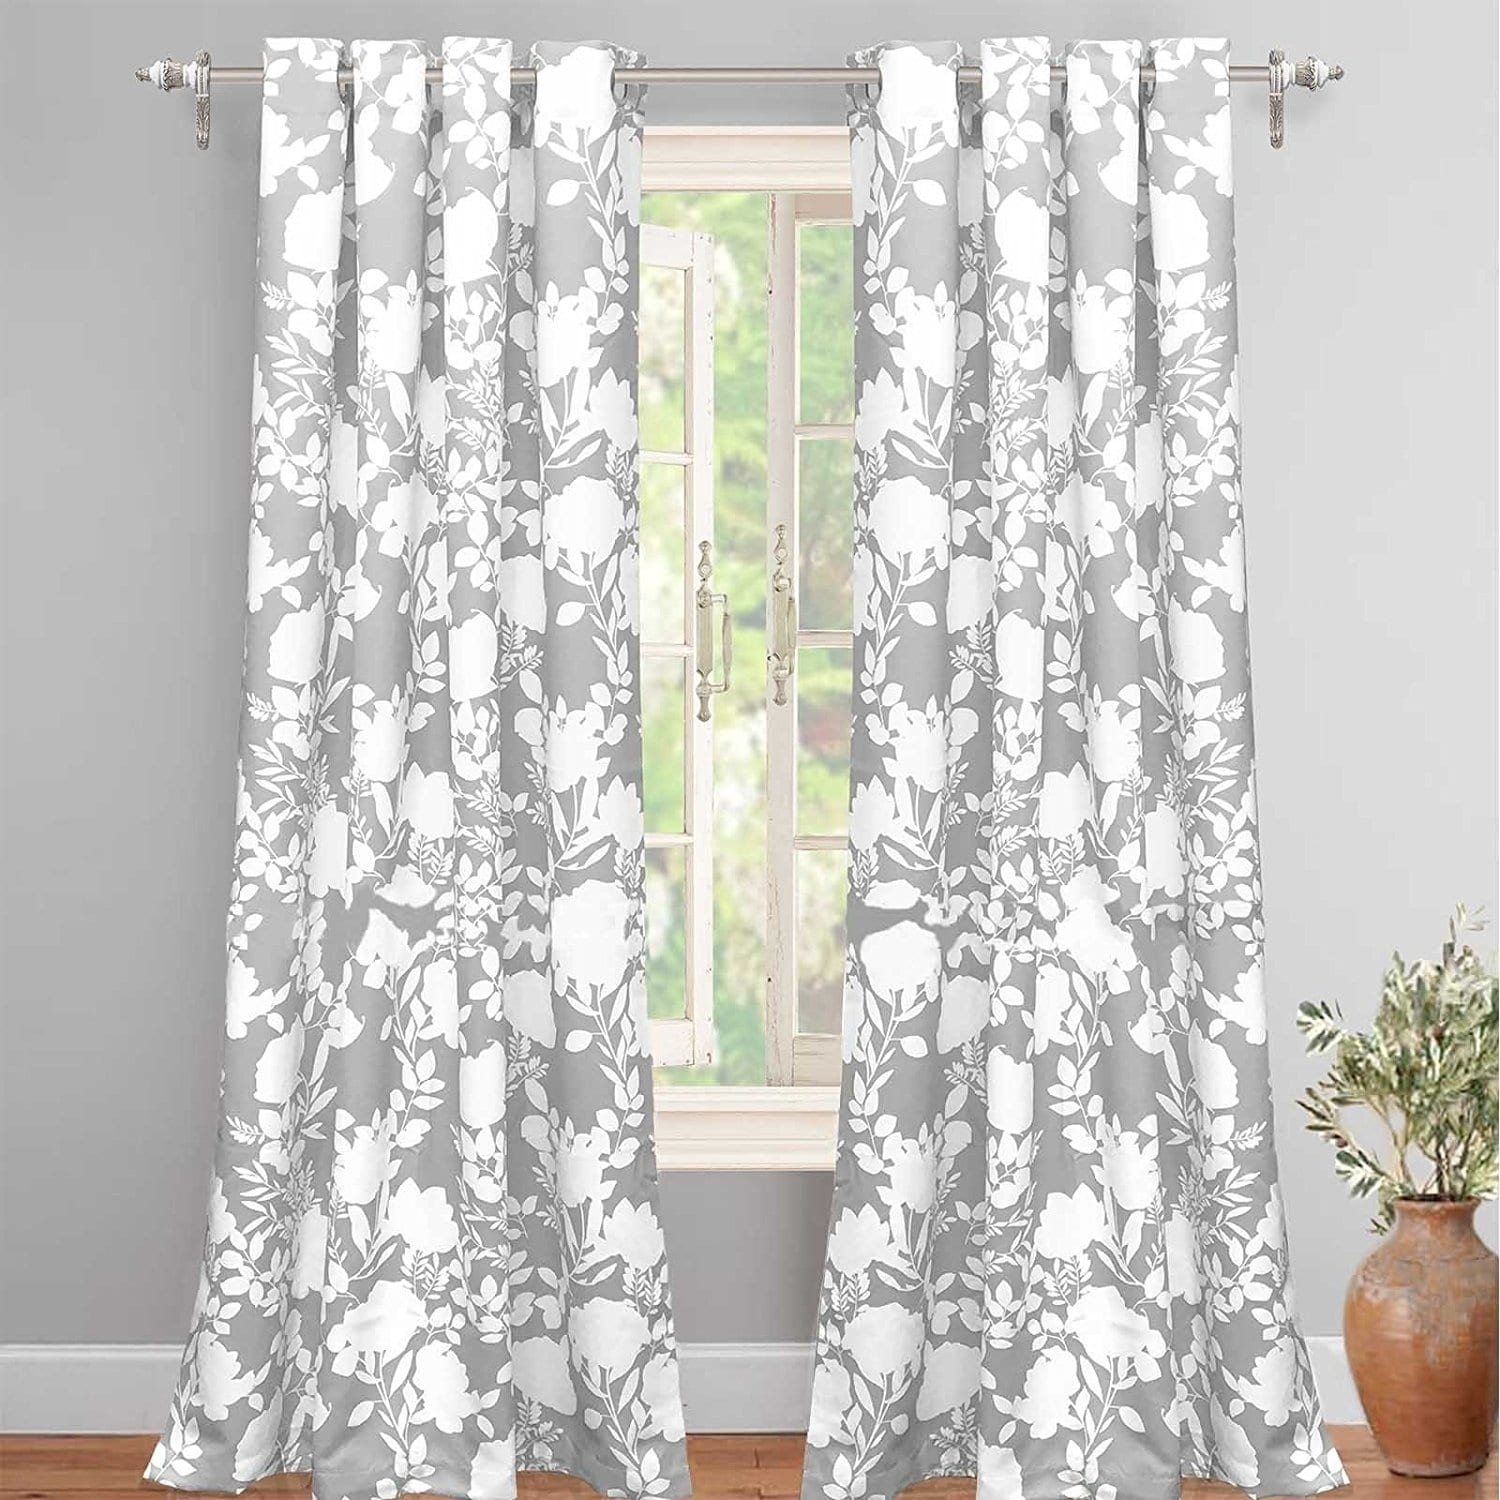 Driftaway Floral Delight Room Darkening Window Curtain Panel Pertaining To Pastel Damask Printed Room Darkening Grommet Window Curtain Panel Pairs (View 6 of 20)